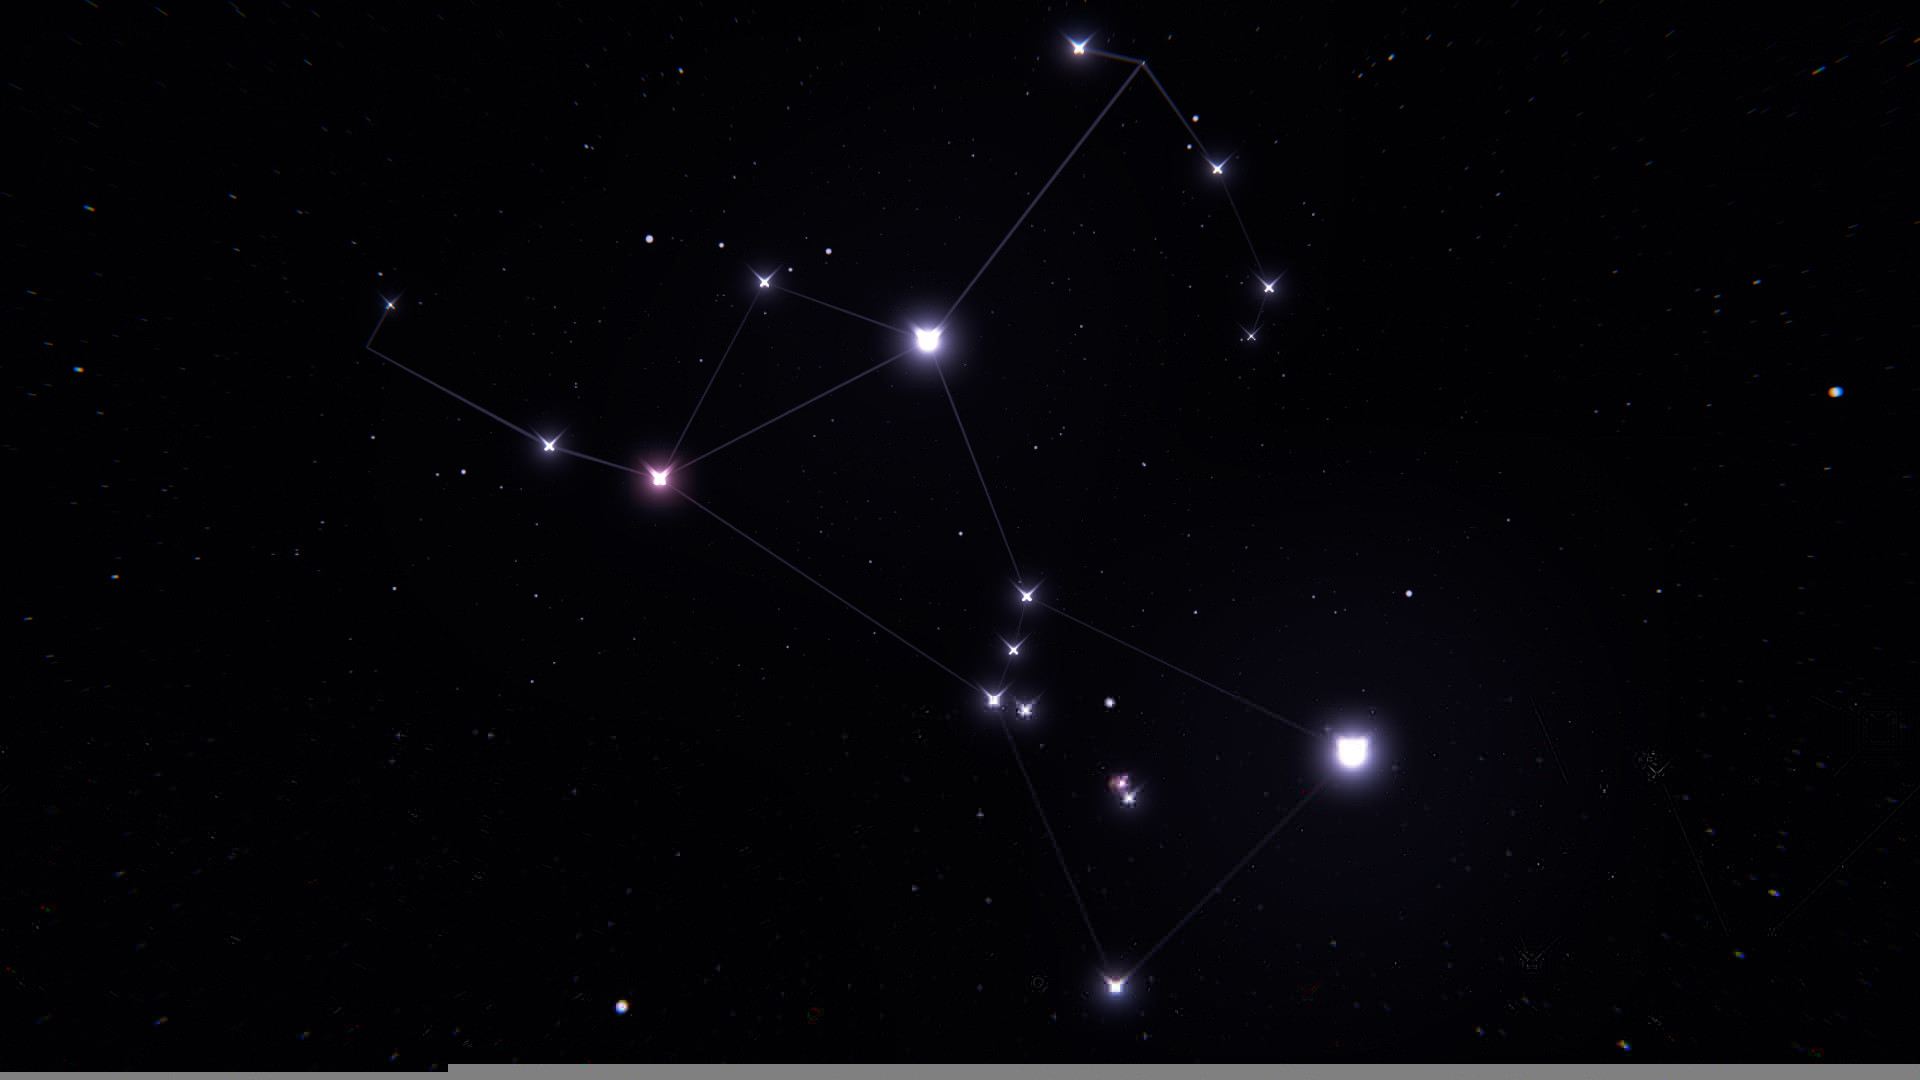 Wallpaper orion, constellation, stars, space wallpapers space .